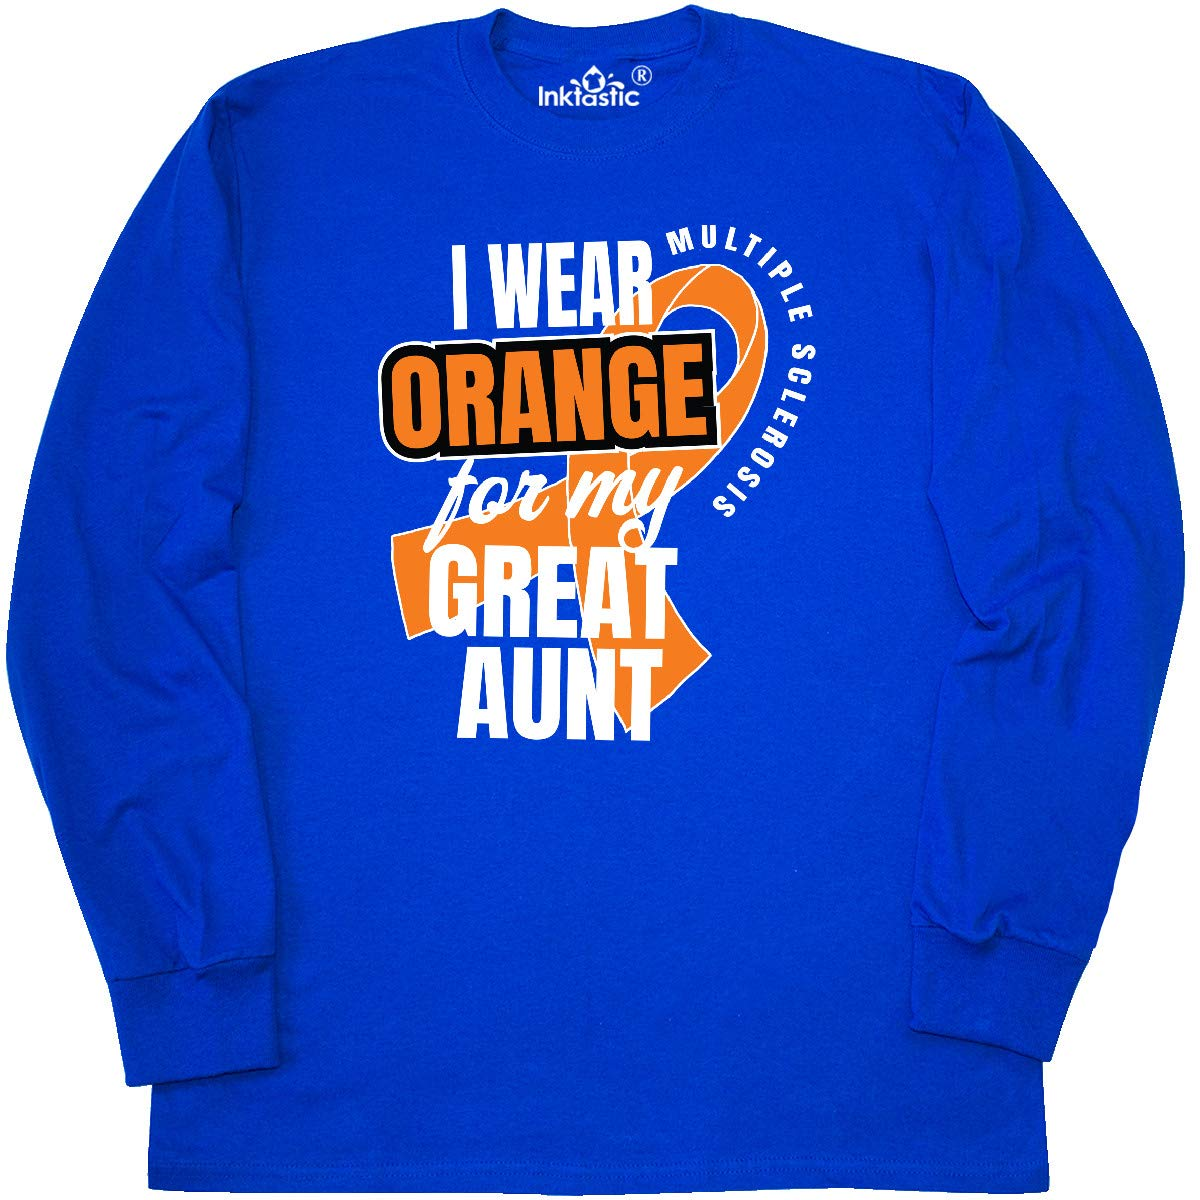 Multiple Sclerosis Baby T-Shirt inktastic I Wear Orange for My Great Aunt